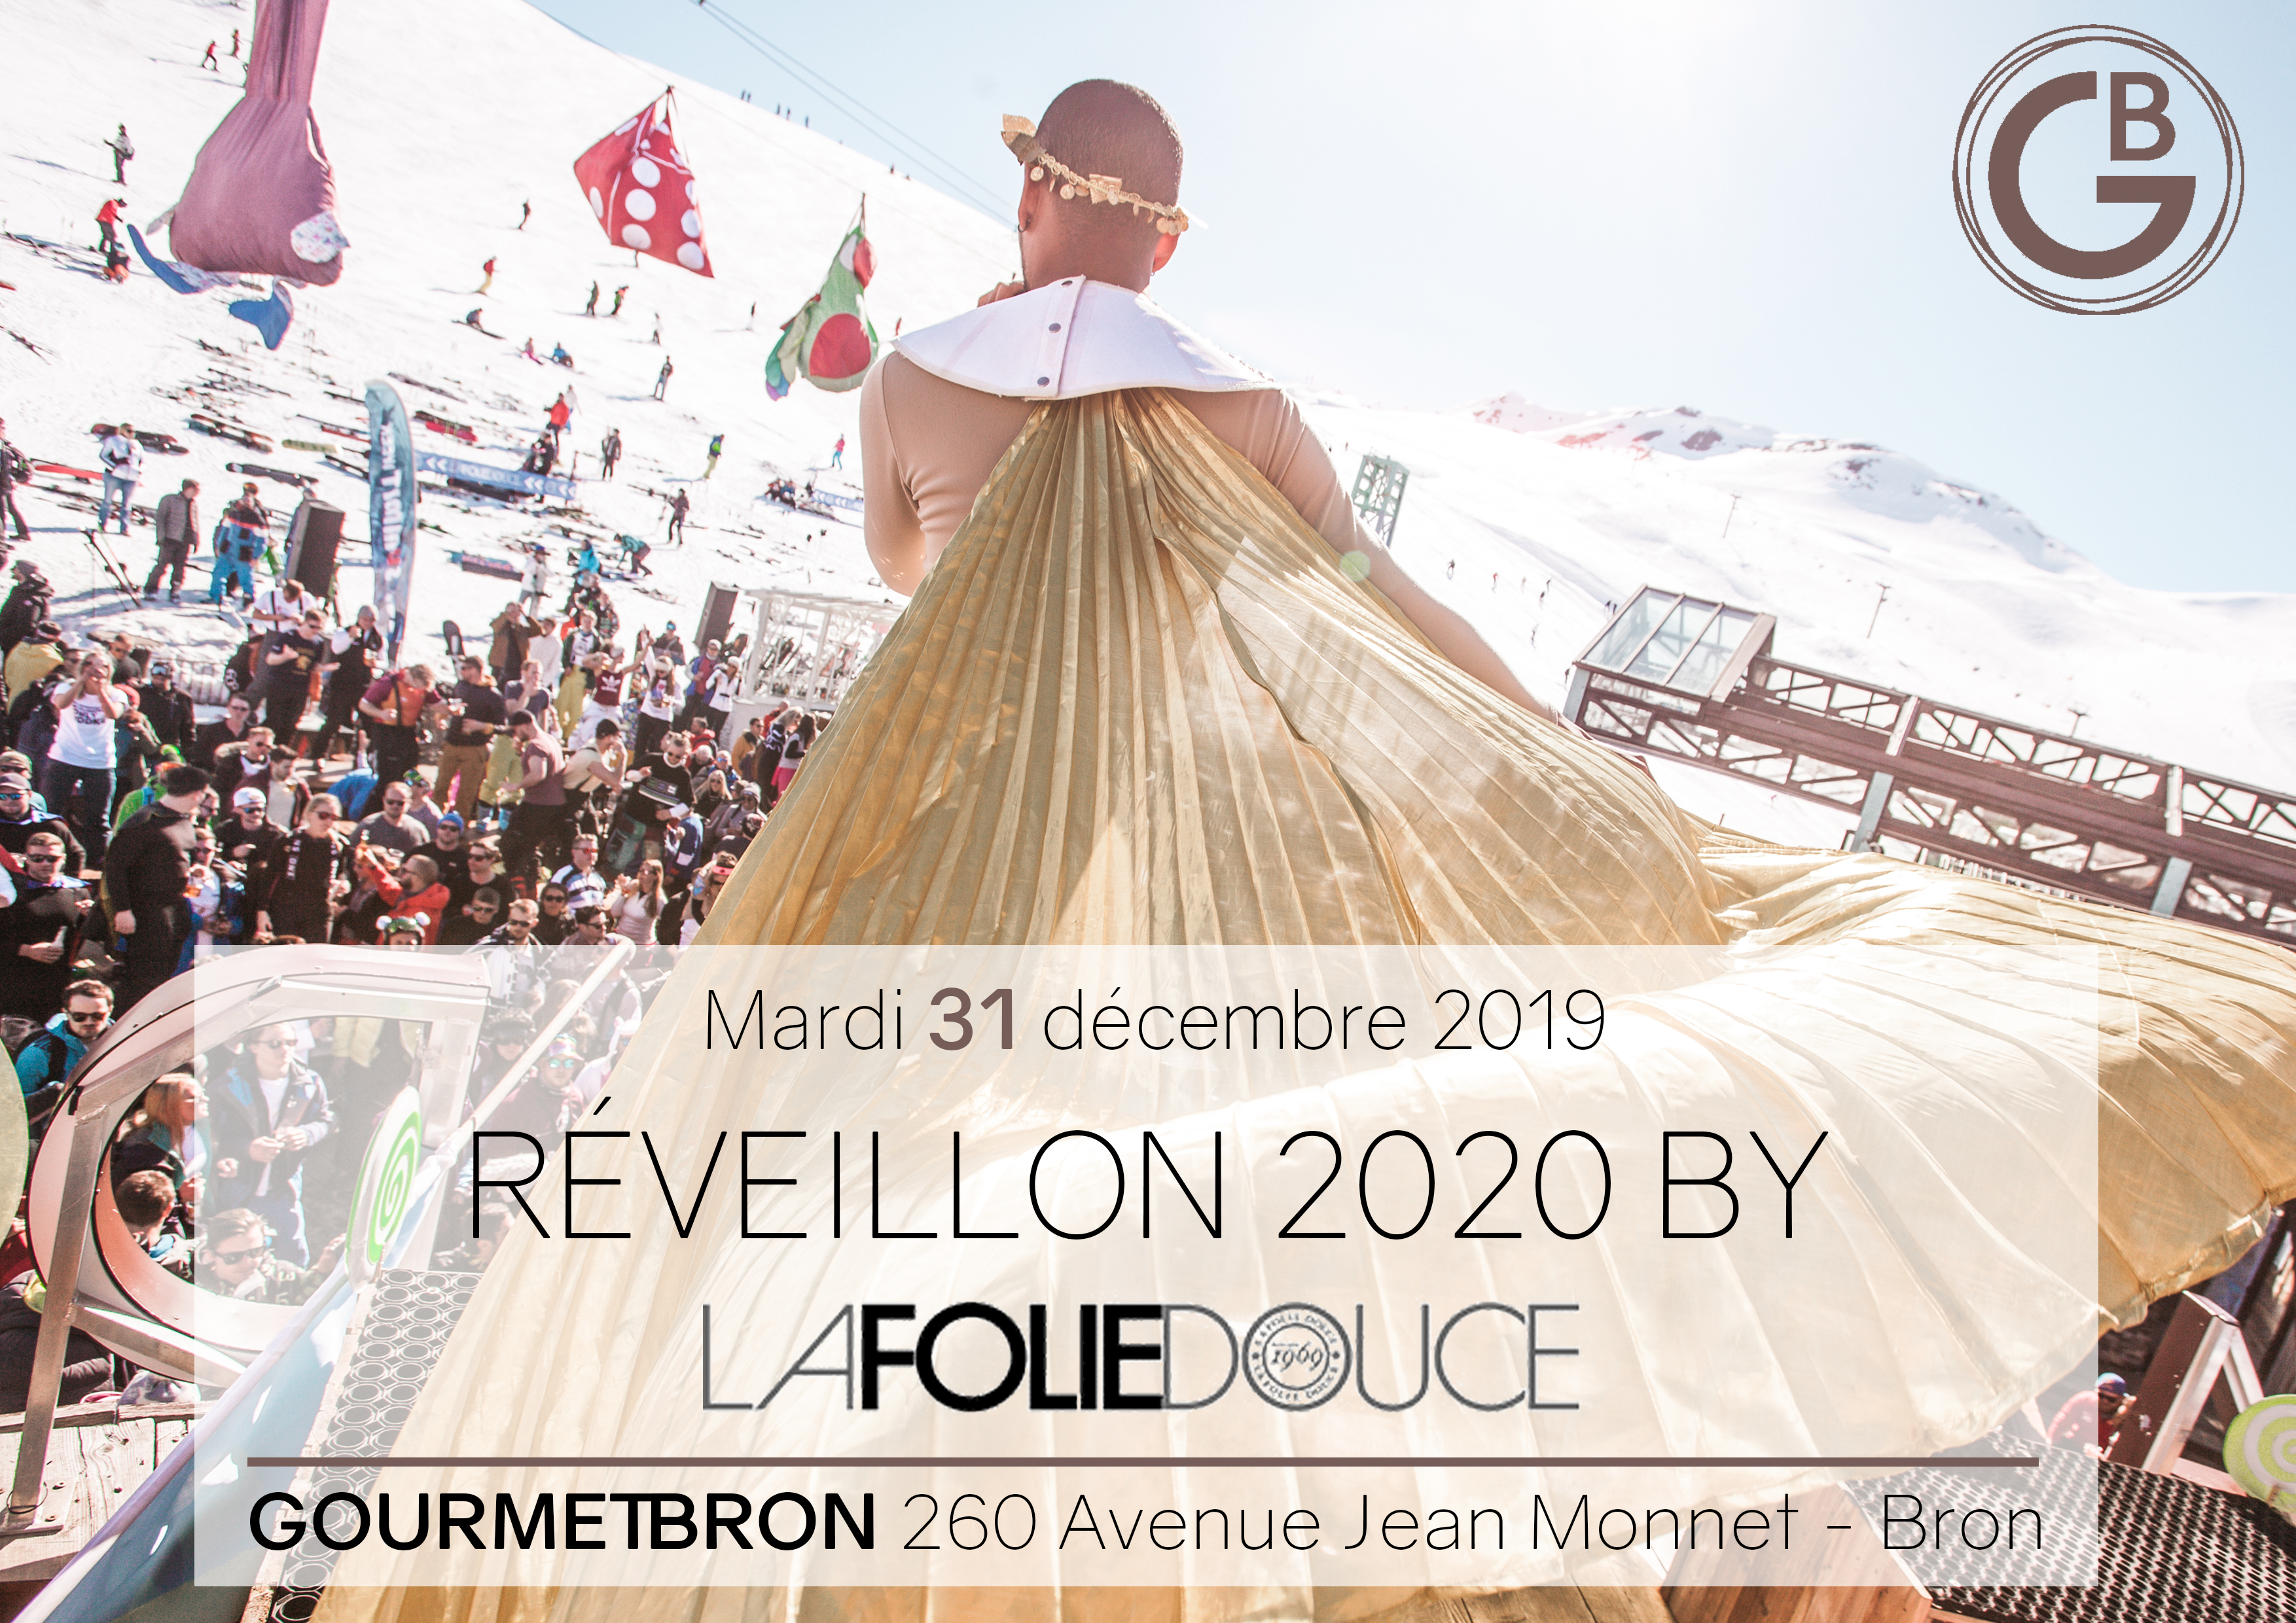 Réveillon 2020 By La Folie Douce